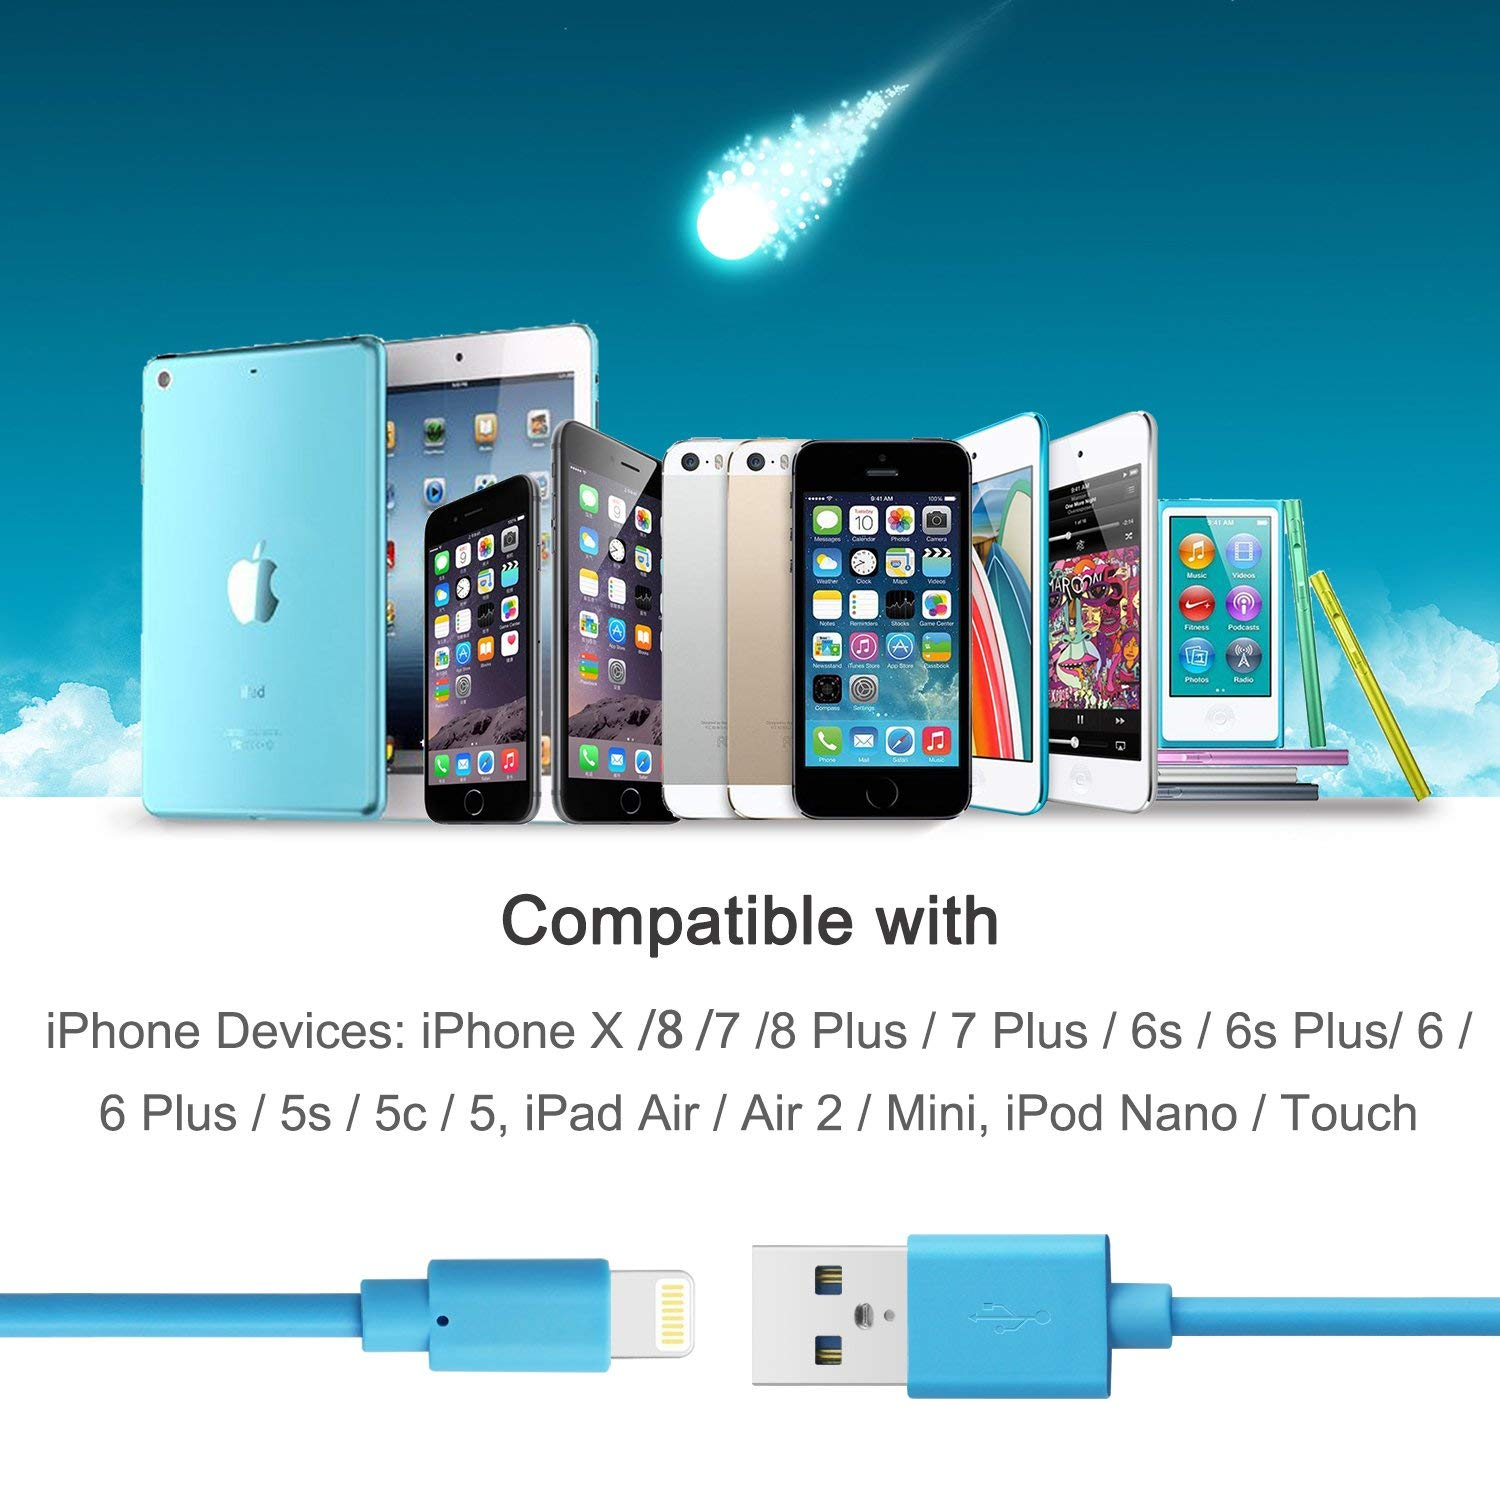 Blue Quntis MFi Certified Apple iPhone Charger Cable 3 Pack 3ft Lightning Cable Compatible with iPhone Xs Max XR X 8 Plus 7 Plus 6 Plus 5s SE iPad Pro iPod Airpods and More